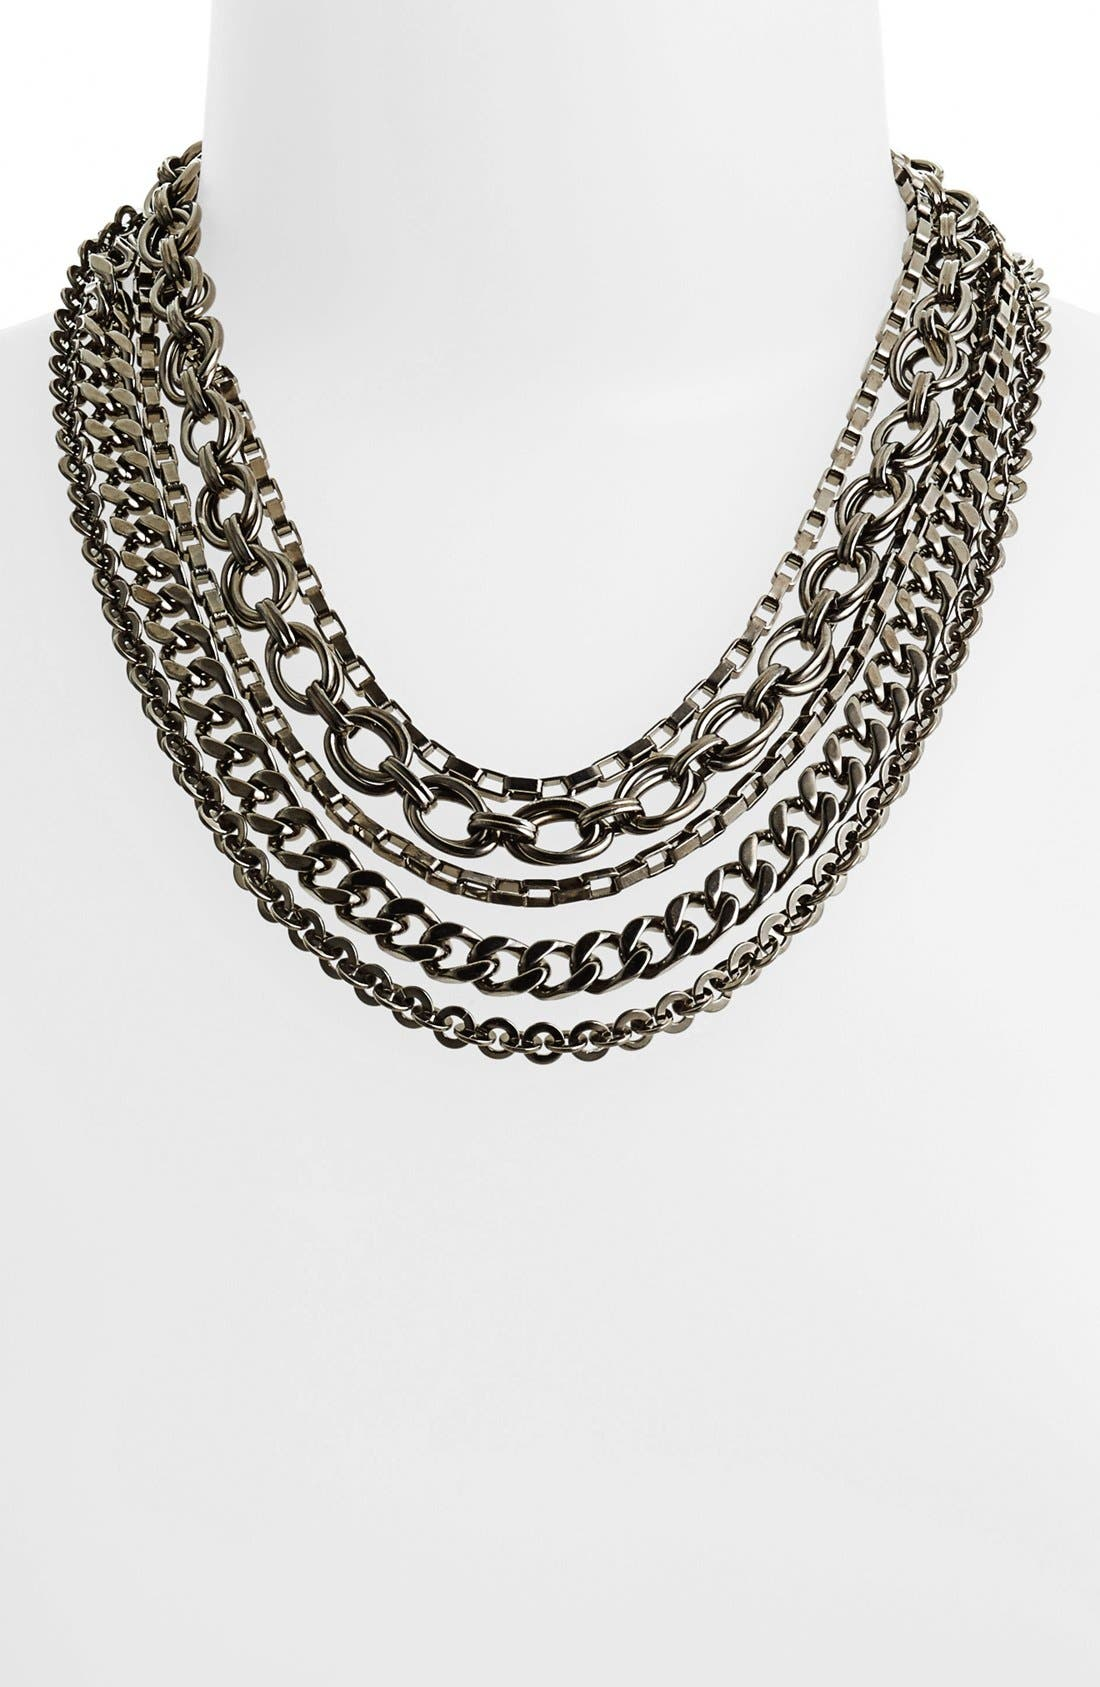 Main Image - Nordstrom 'Lady Links' Mixed Chain Necklace